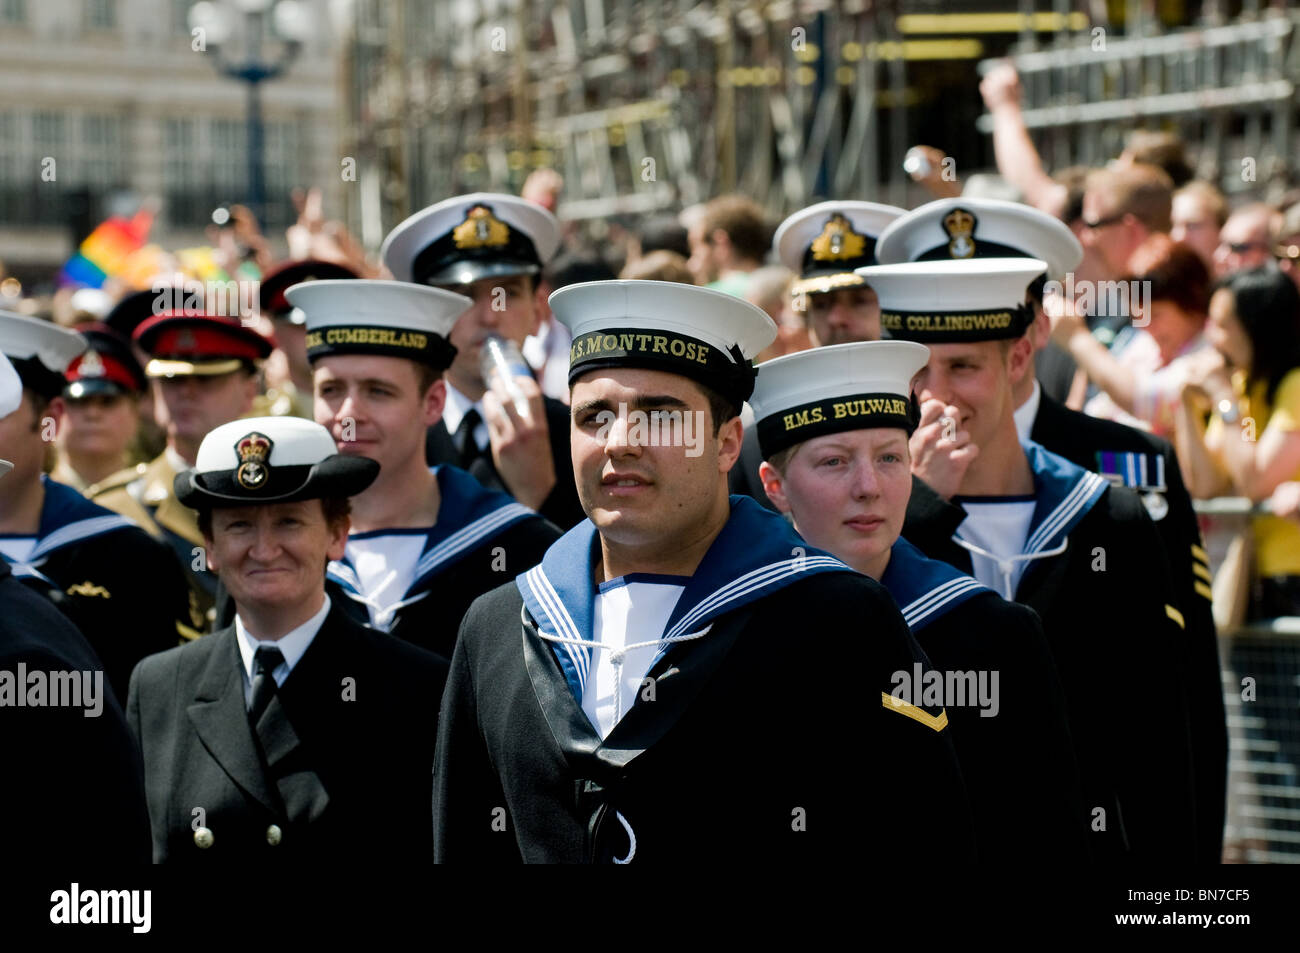 Royal Navy marching at the Pride London celebrations. - Stock Image